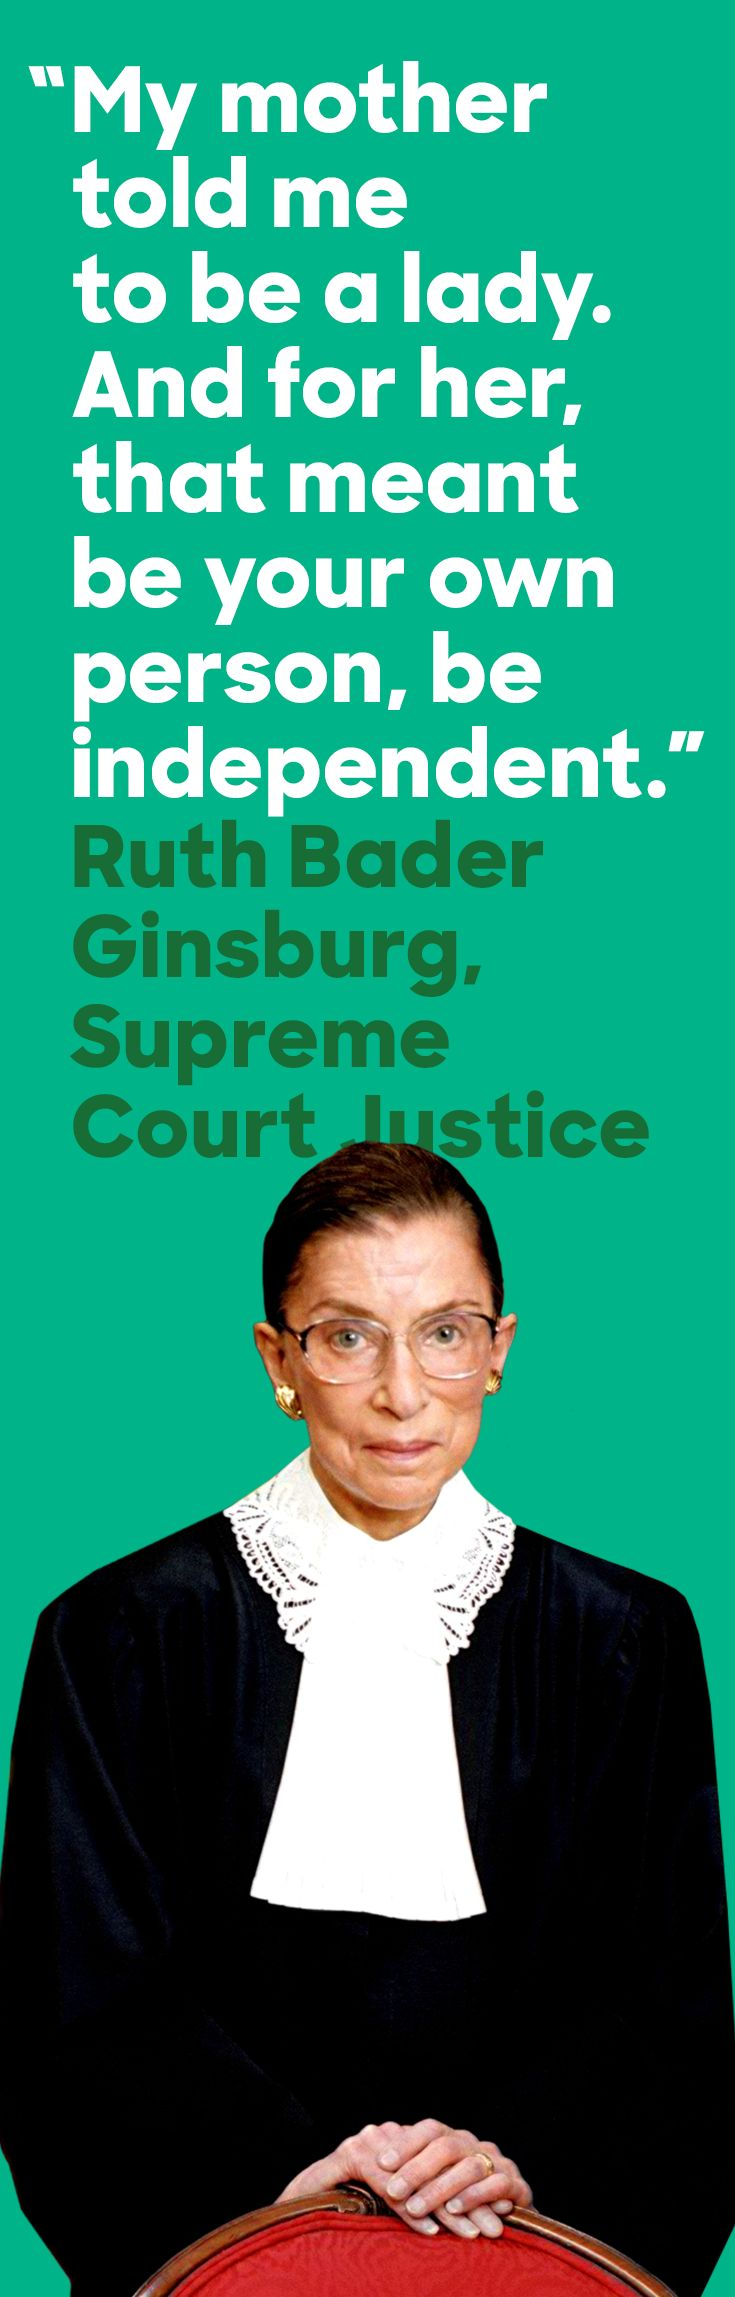 Happy birthday to Supreme Court Justice Ruth Bader Ginsburg, the second female justice and a lifelong fighter for equal rights. As a litigator in the 1970s, she argued some of the most important cases against sex discrimination before the Supreme Court; as a Justice, she's fought to protect the rights of women and all Americans.